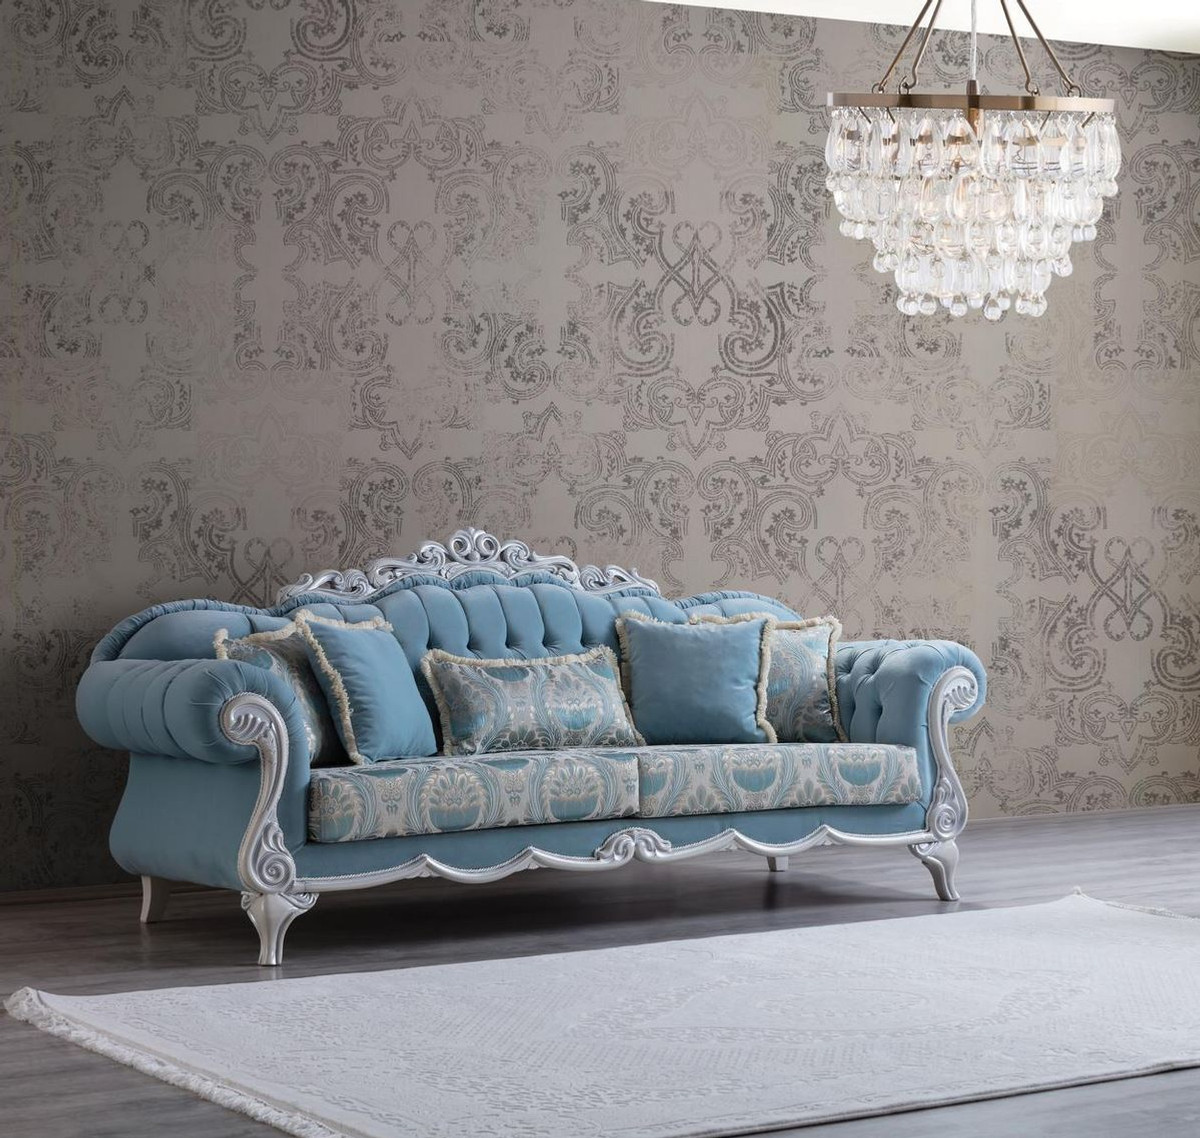 Casa Padrino Luxury Baroque Living Room Sofa With Decorative Pillows Light Blue Gray 237 X 90 X H 105 Cm Baroque Furniture Noble Magnificent